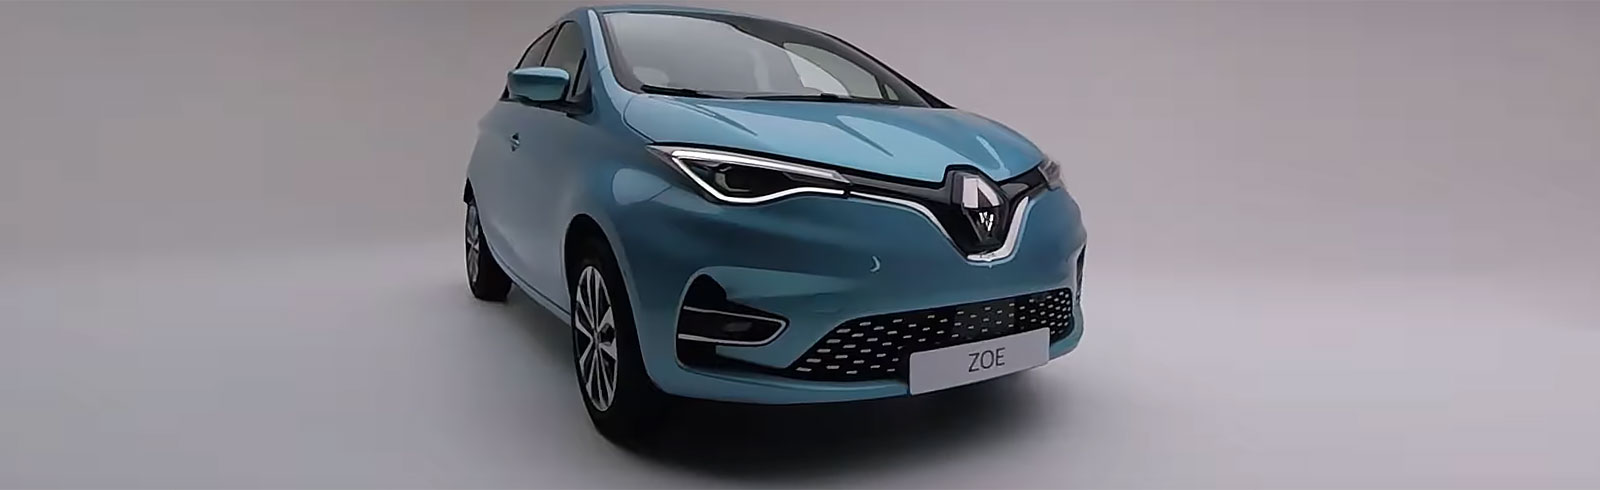 UPDATED: 2020 Renault Zoe 52 kWh specs and video